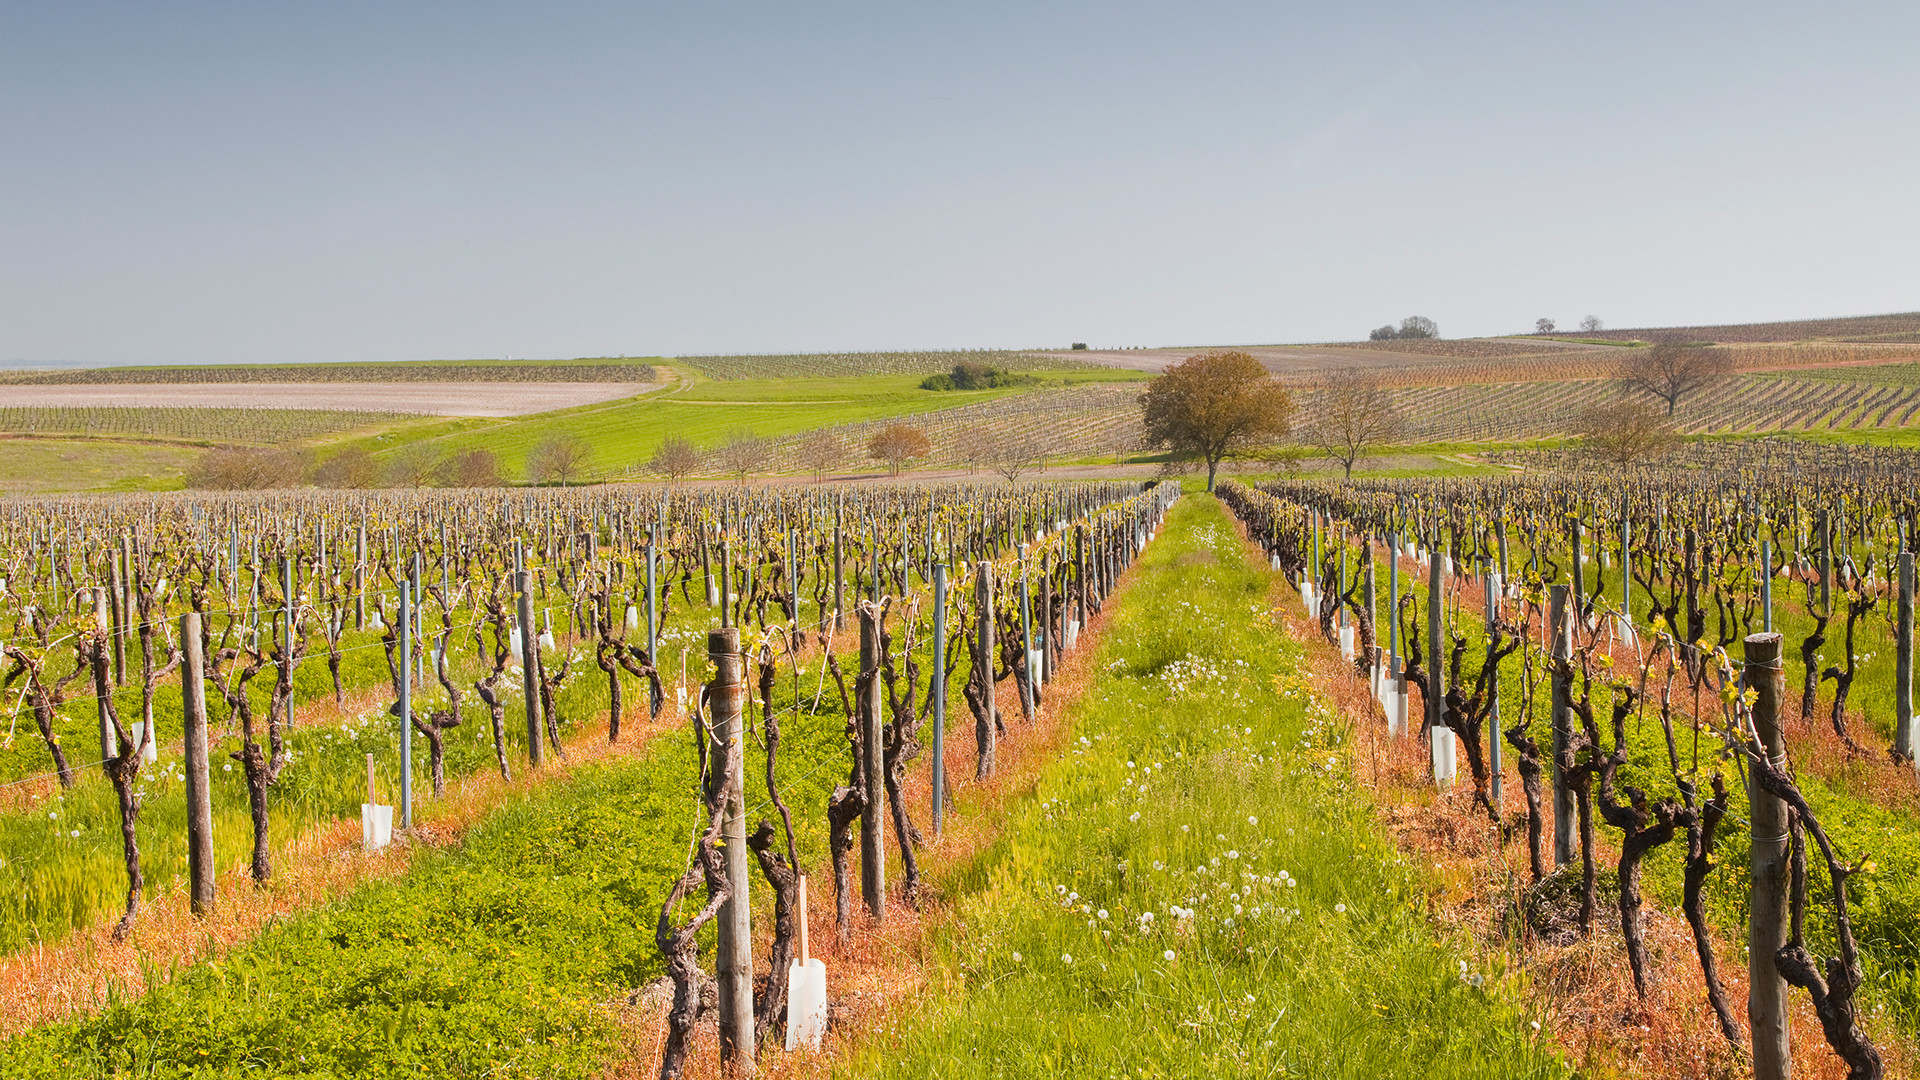 A vineyard in Cognac